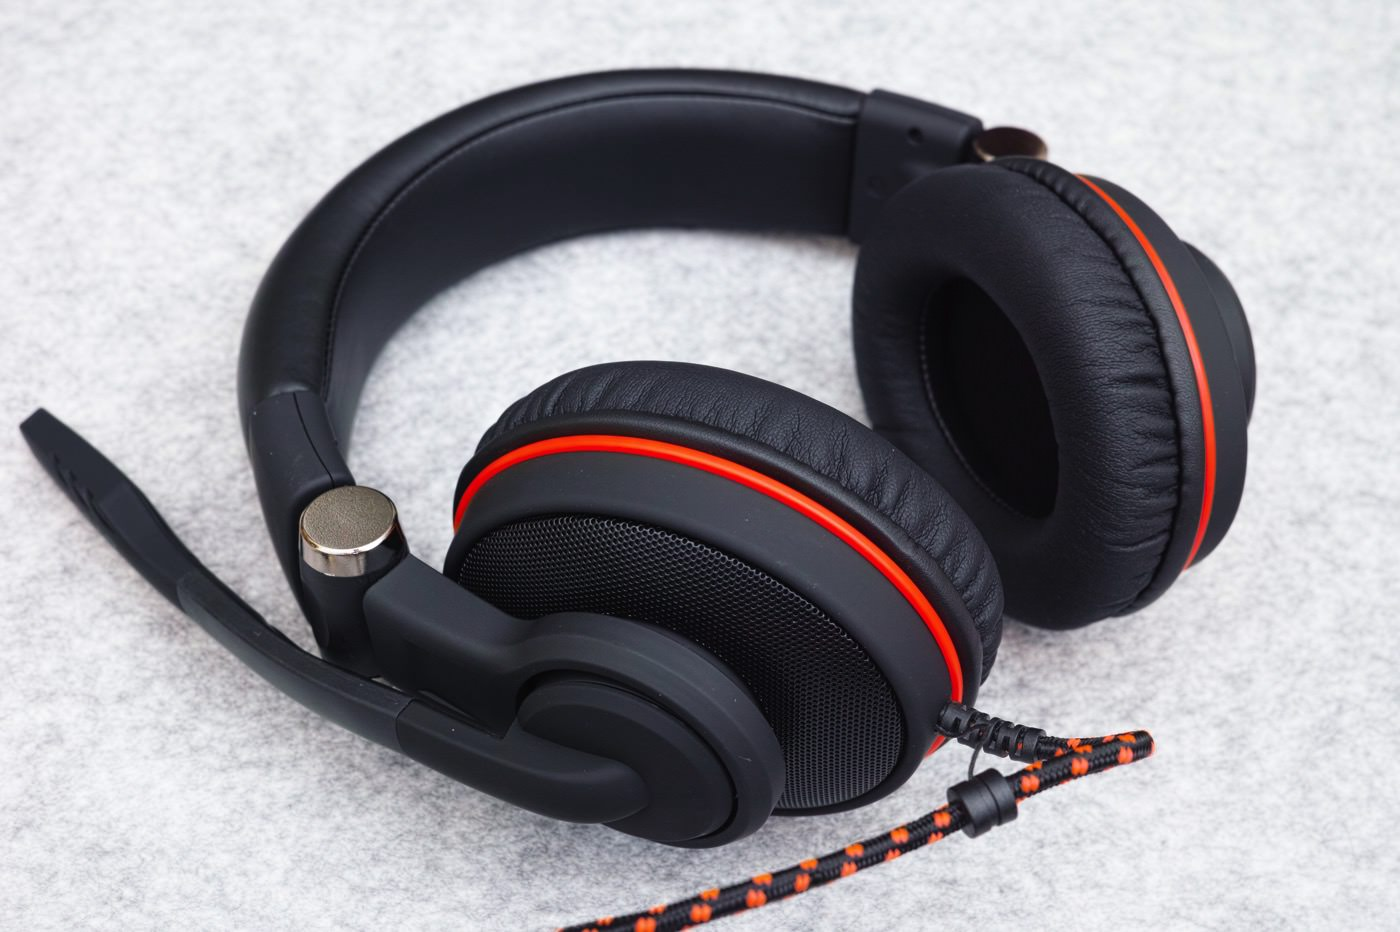 Epicgear sonorouz x gaming headset review 00008